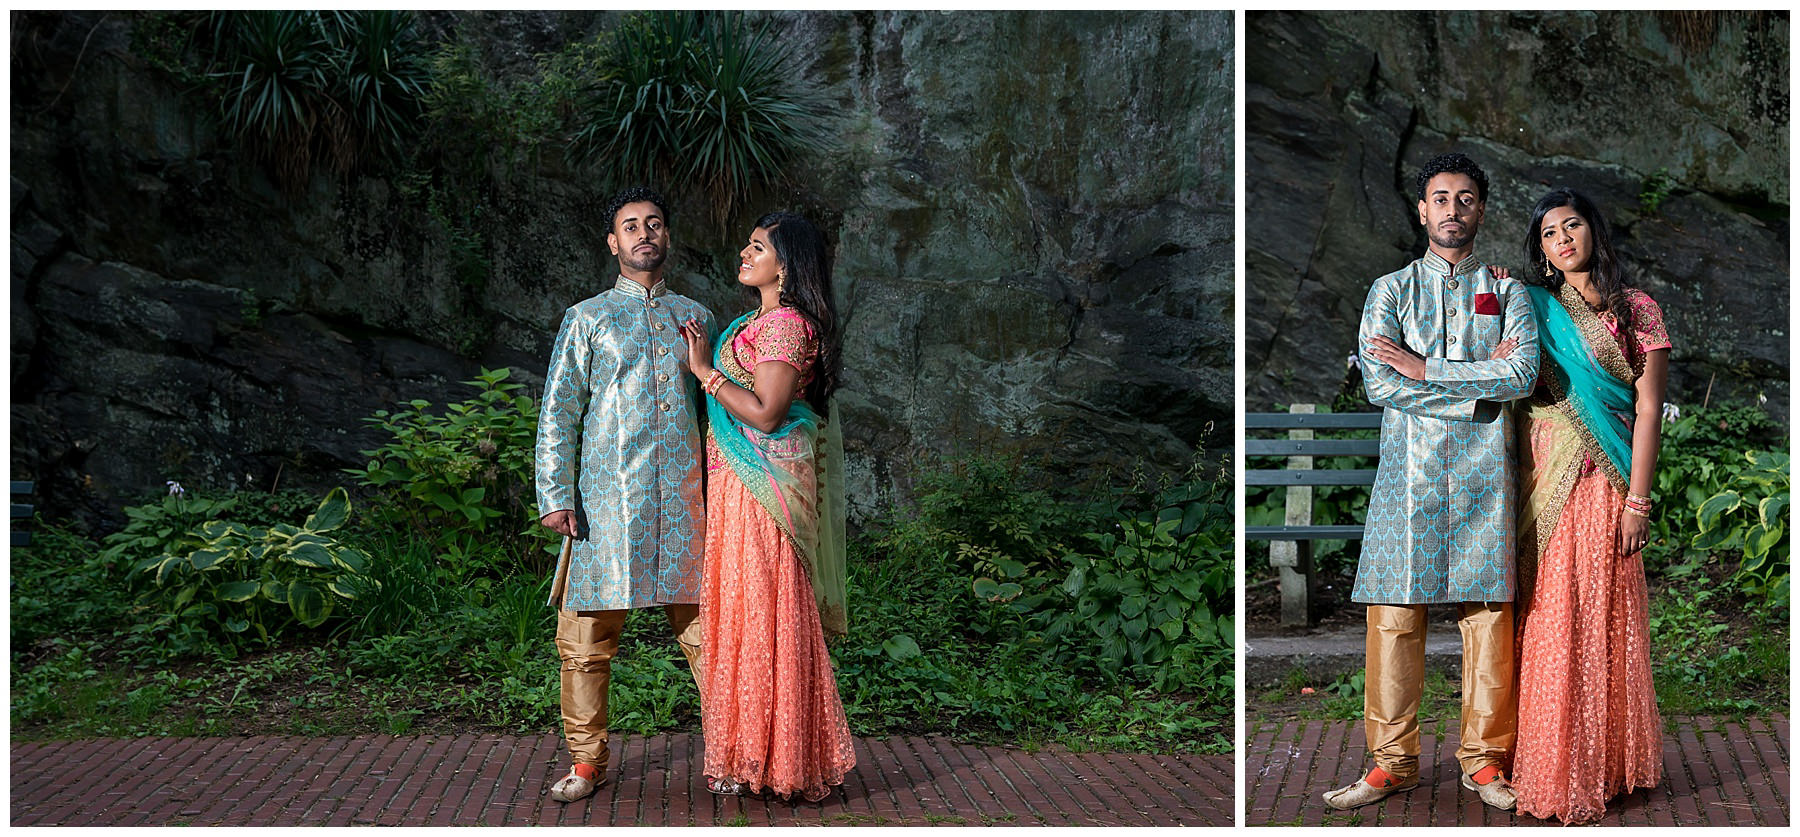 fort-tysons-park-new-york-engagement-shoot-sibyl-jithin-7.jpg